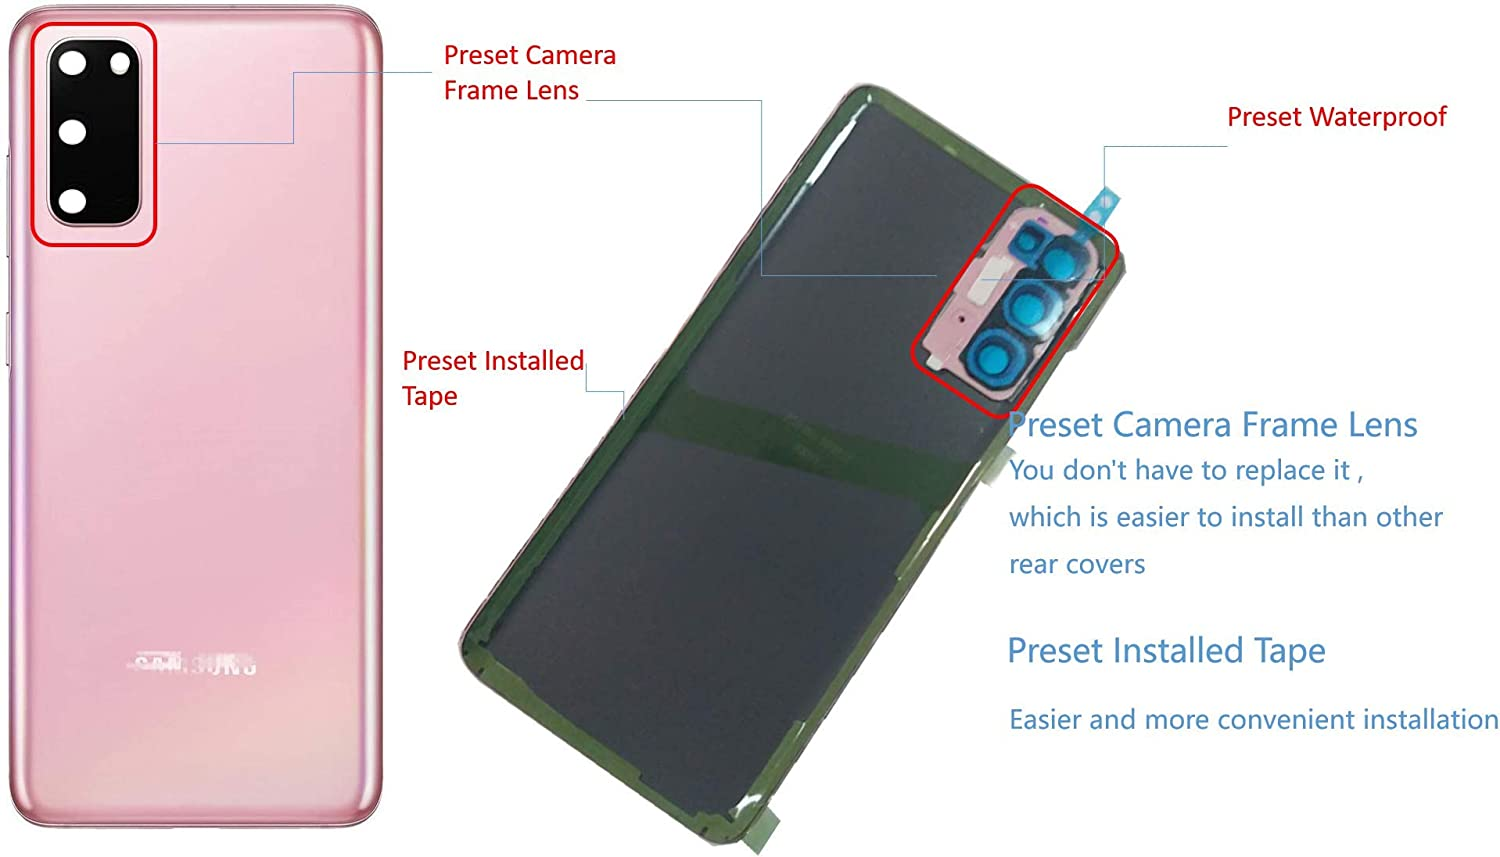 Cloud Pink Galaxy S20 Back Glass Replacement Housing Door Parts with Camera Frame Lens,with Pre Intalled Tape,with Waterproof for Samsung Galaxy S20 with Tools